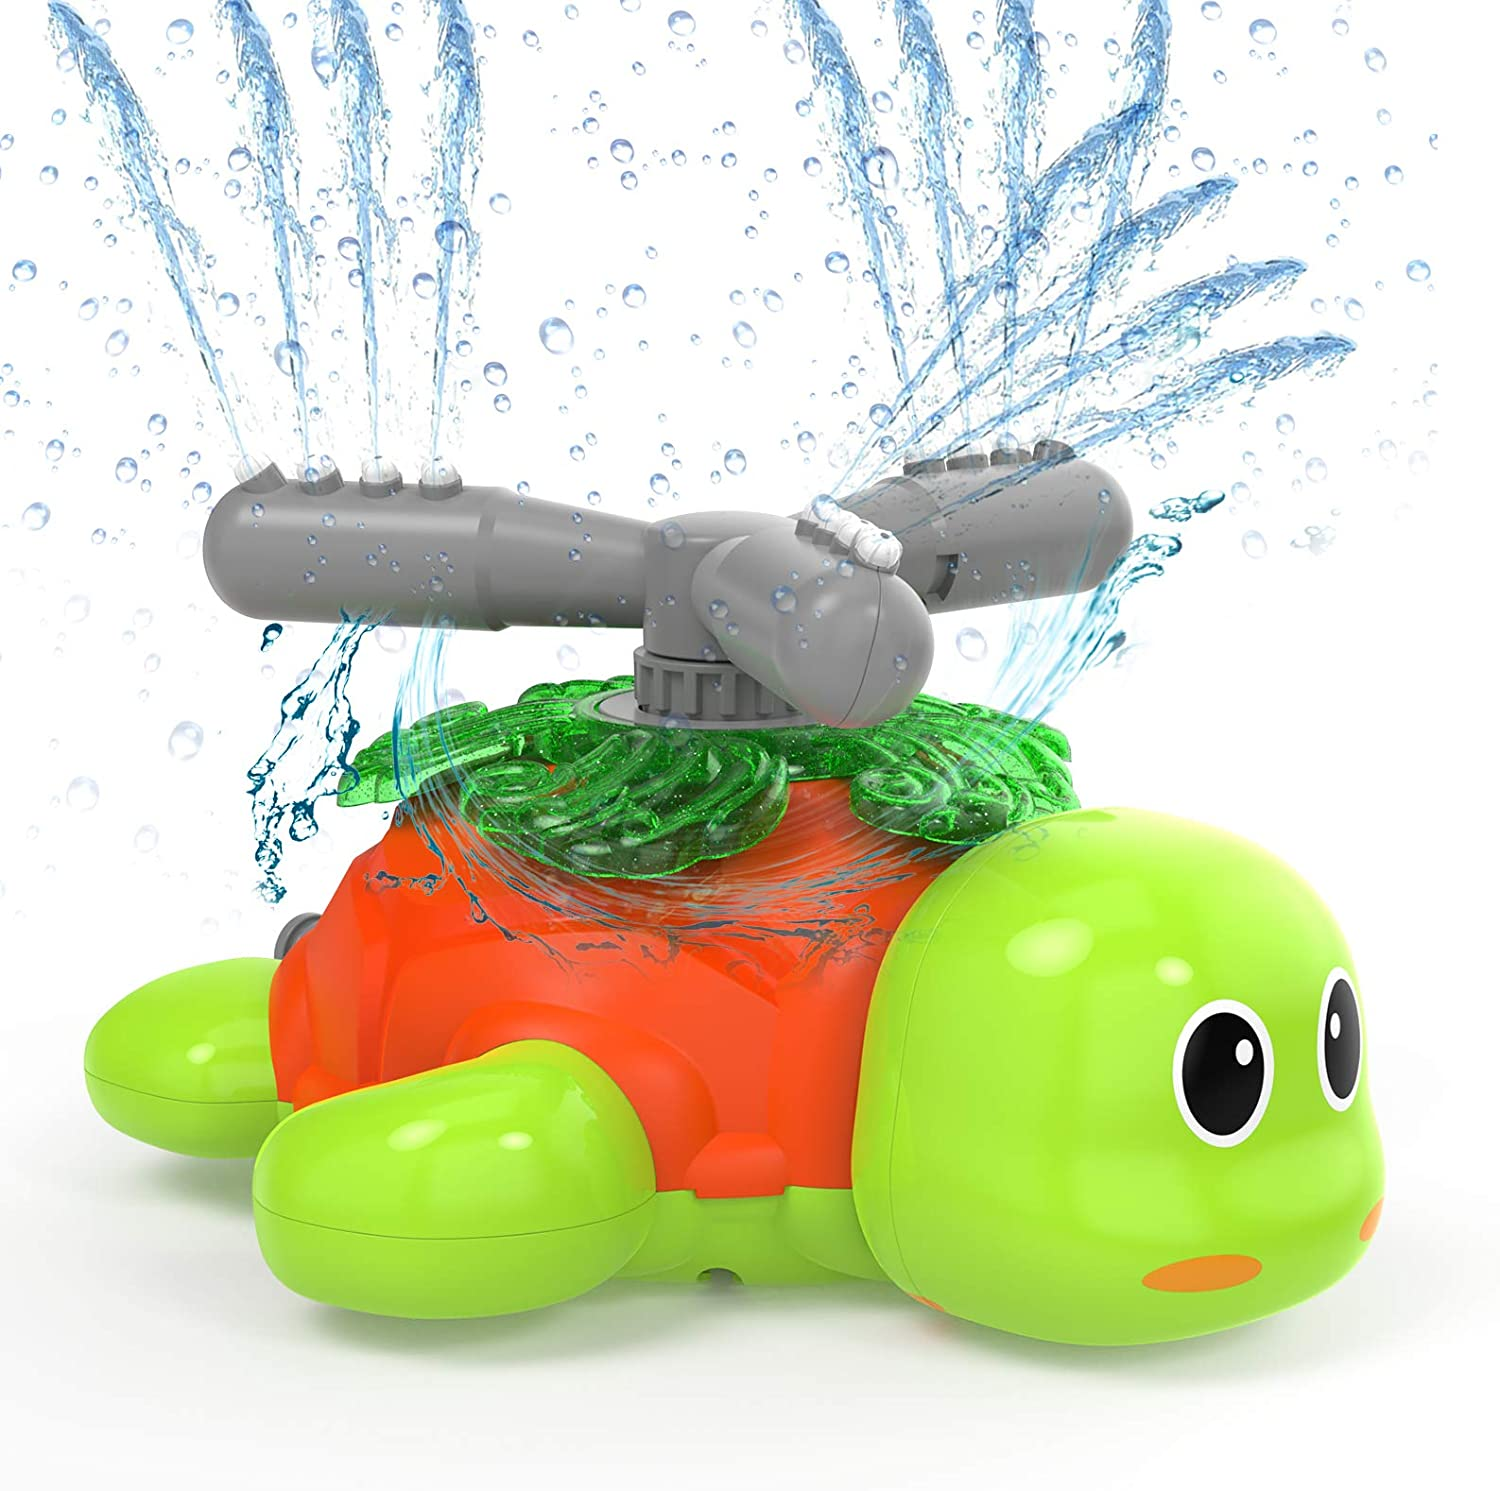 discount Free shipping Water Sprinklers for Kids and Toys Play Outdoor Toddler